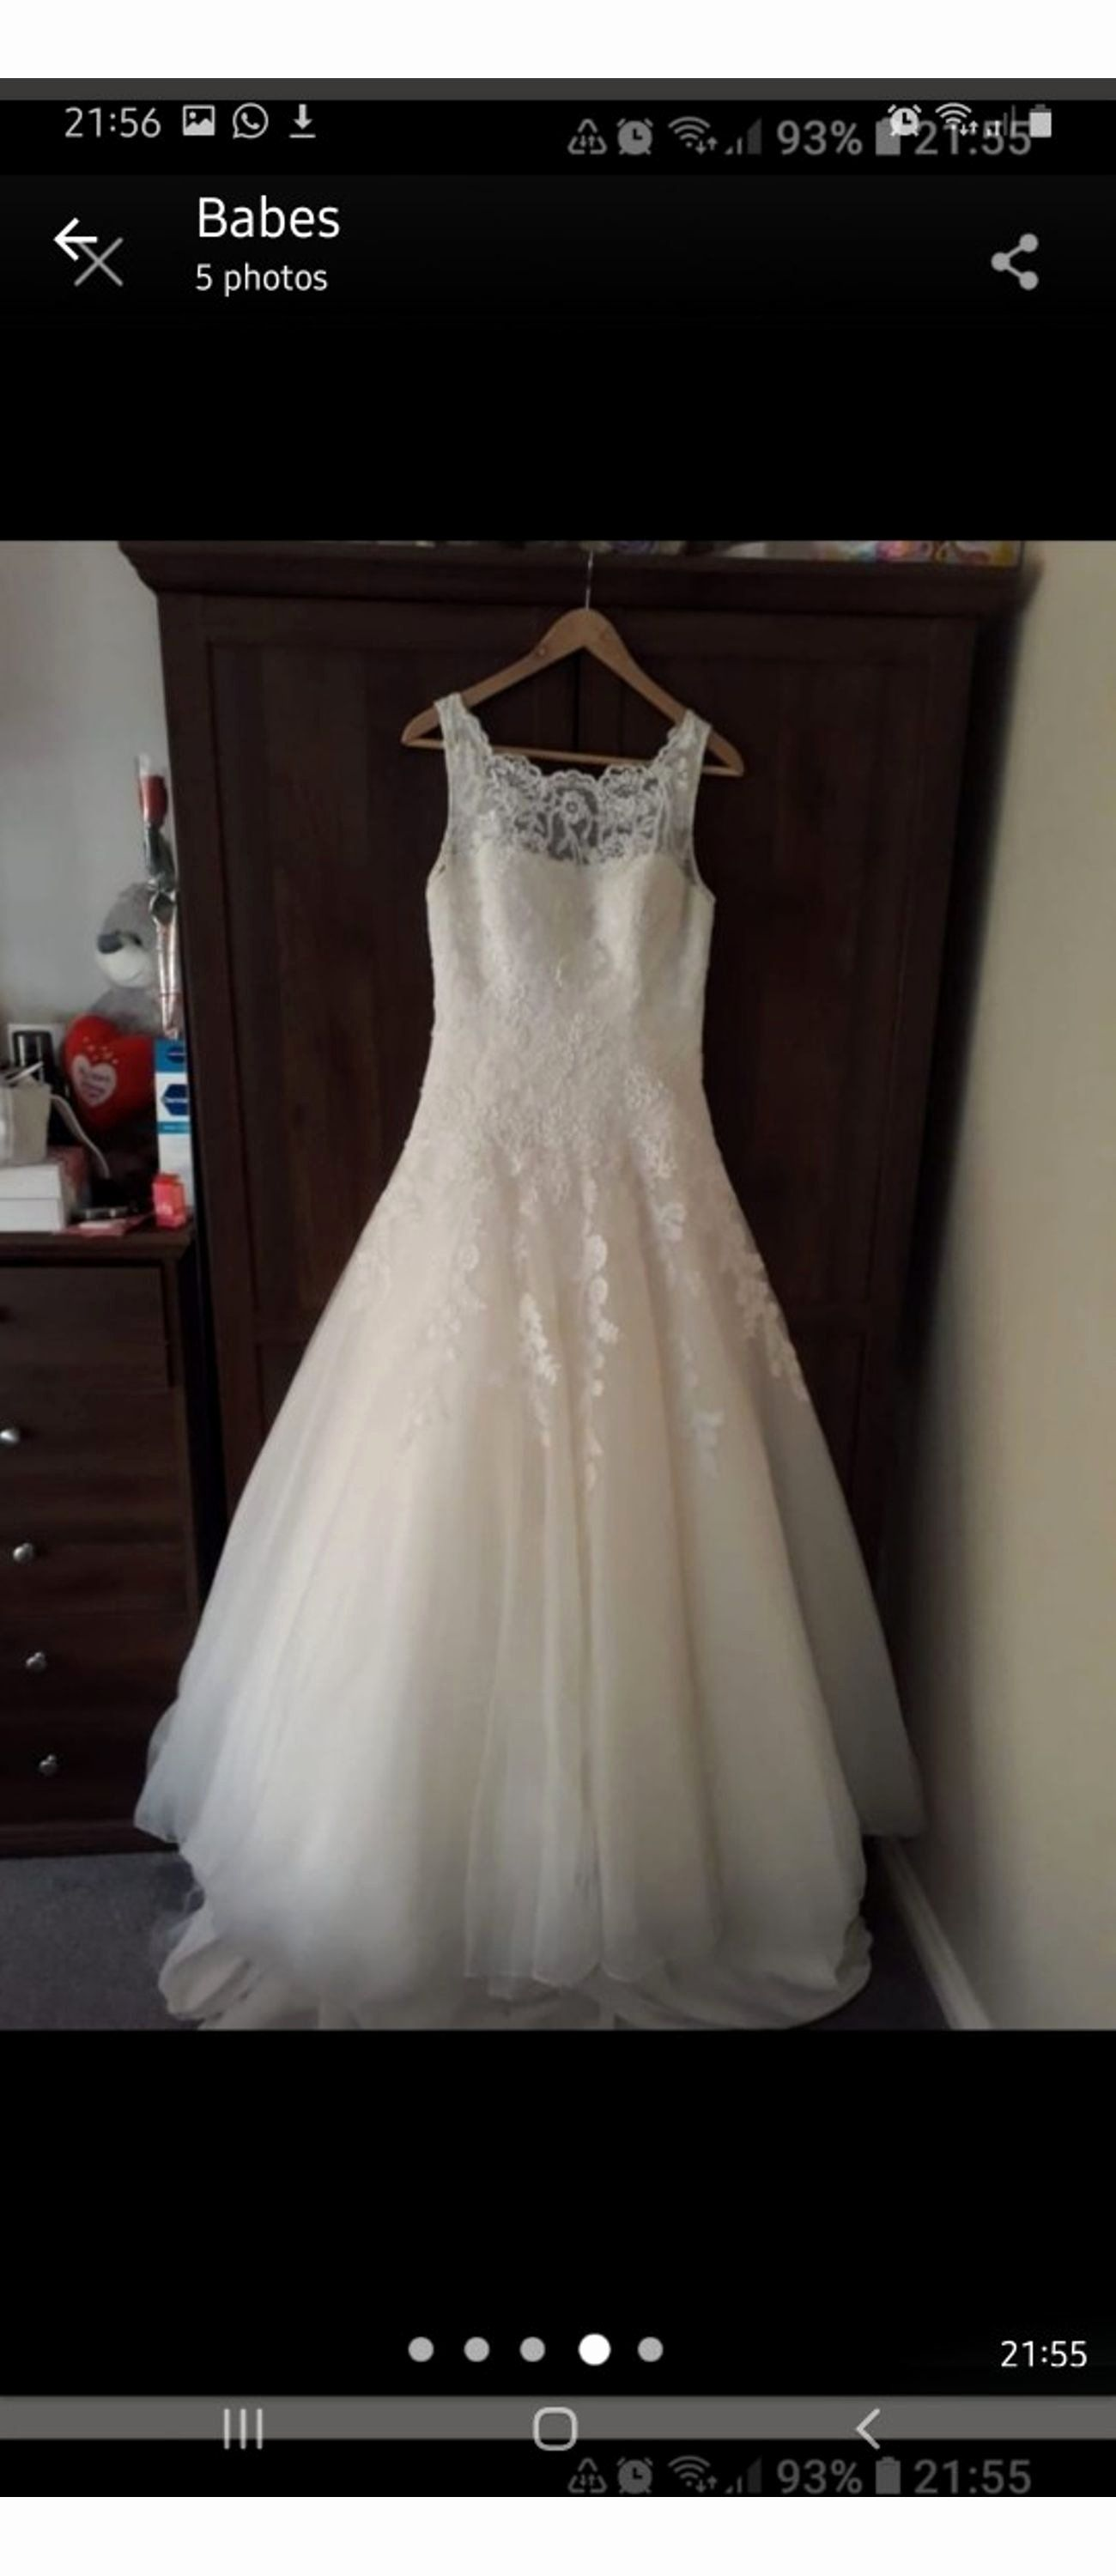 How Much Does It Cost To Dry Clean Wedding Dress Unique Justin Alexander Wedding Dress In Wolverhampton For 300 00 In 2020 Wedding Dresses Clean Wedding Dress Dresses